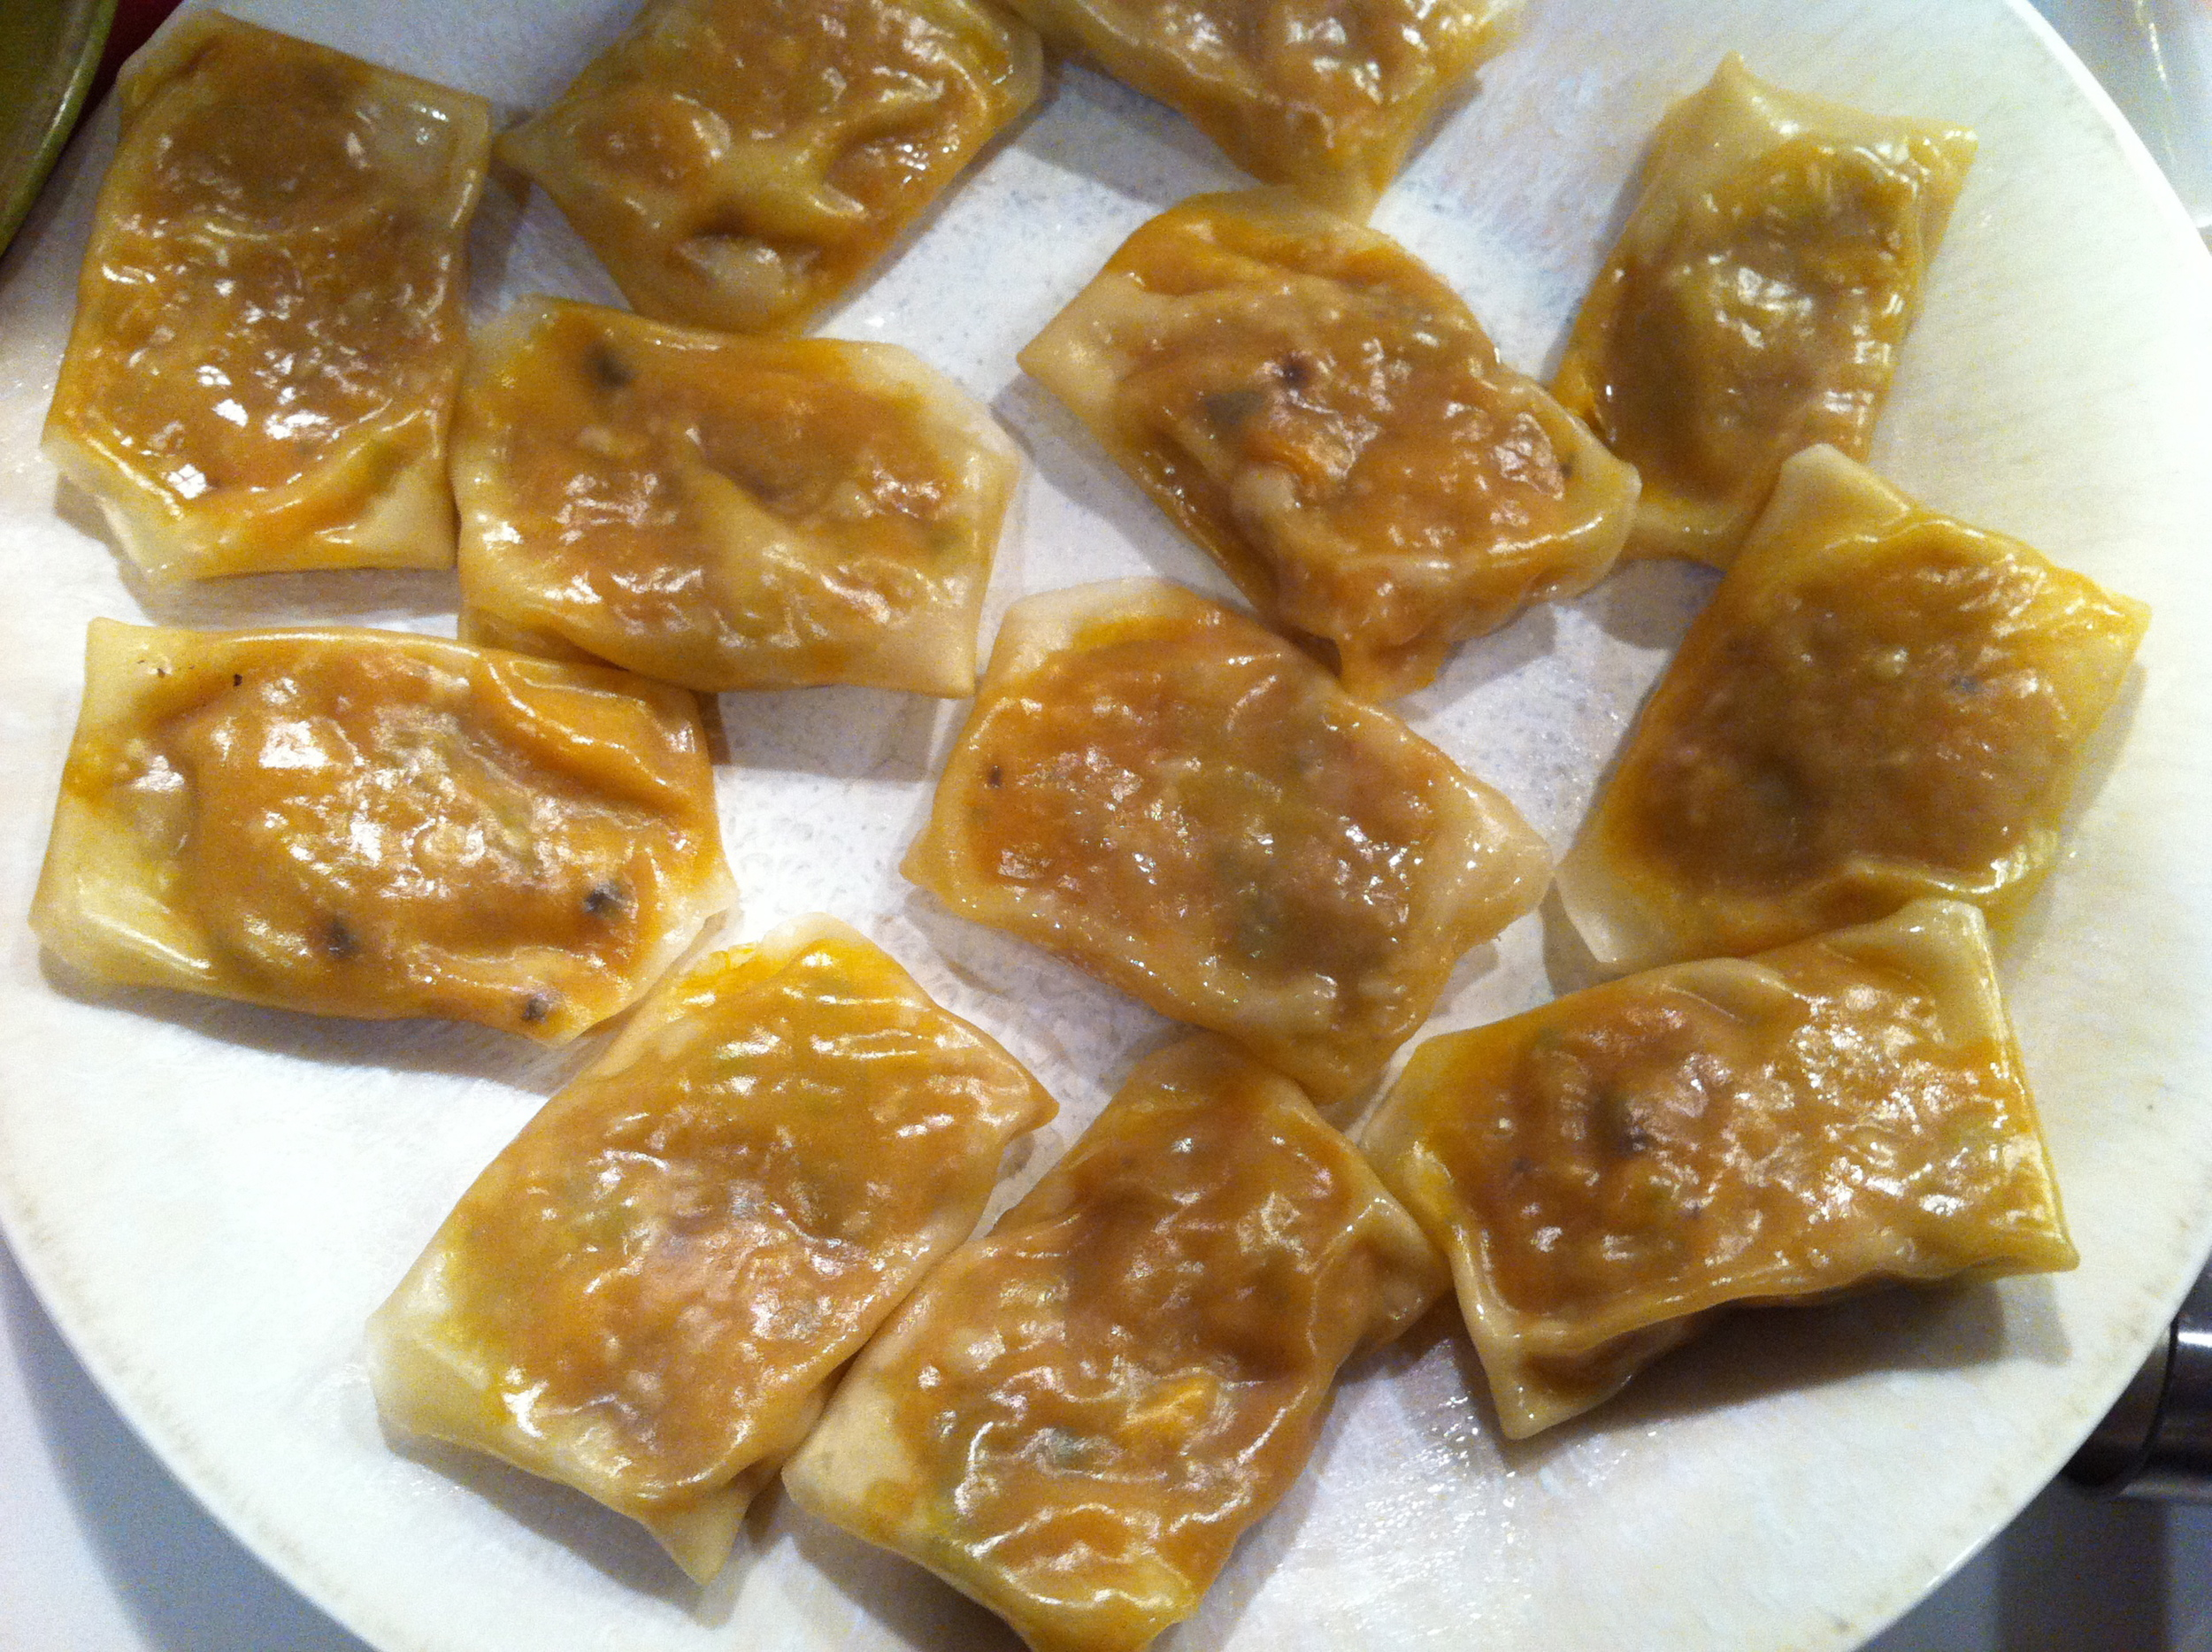 These steamed wontons are vegan and filled with kabocha squash.